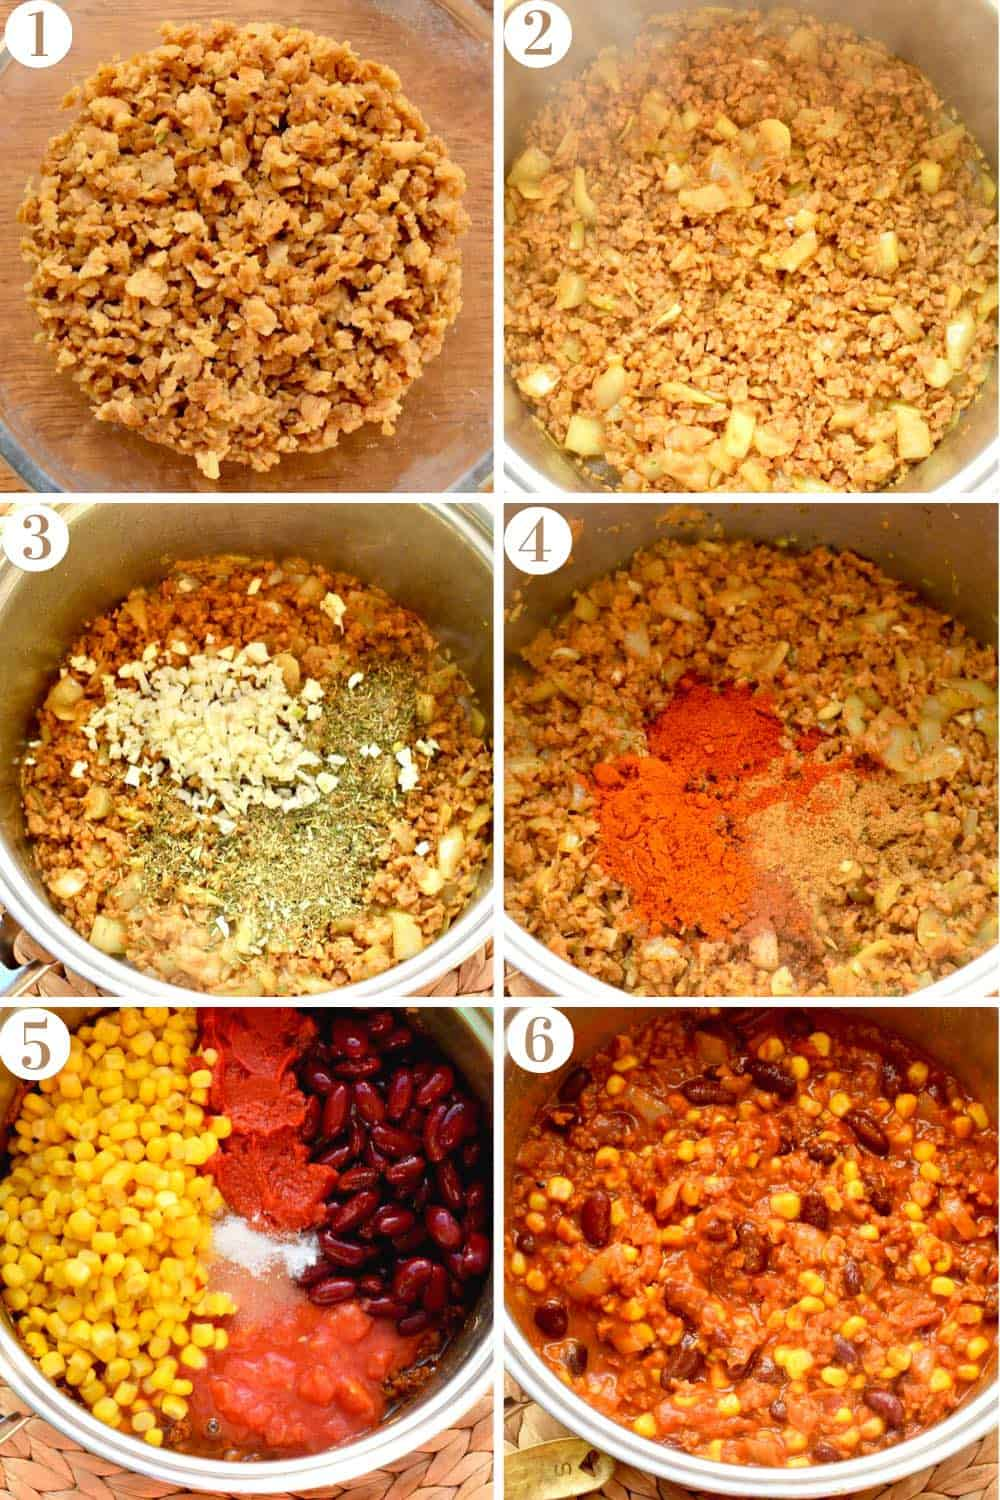 A step by step collage of the chili being made